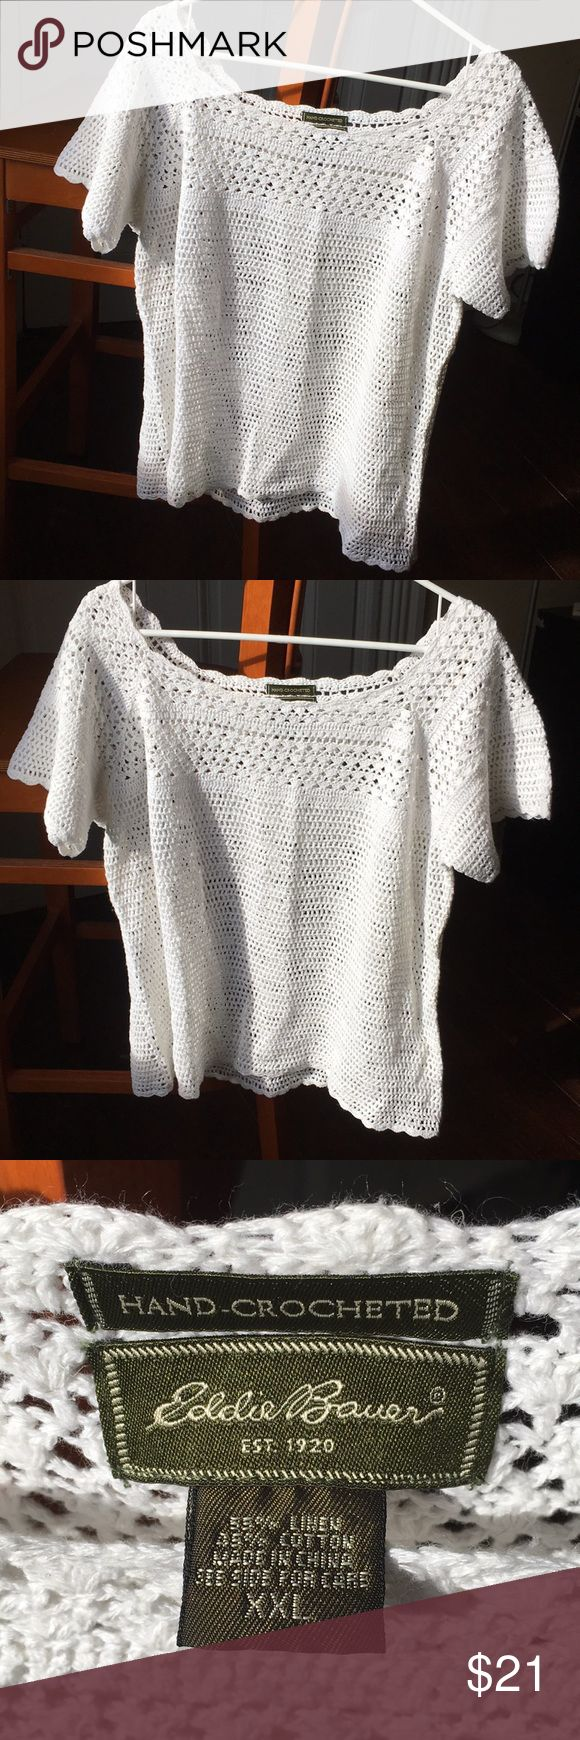 Hand-crocheted Eddie Bauer tee Hand-crocheted women's tee-shirt style blouse. Bright white, no stains or tint from washing. 55% linen 45%cotton yarn. Beautiful EUC. Any questions, please ask :) Eddie Bauer Tops Tees - Short Sleeve